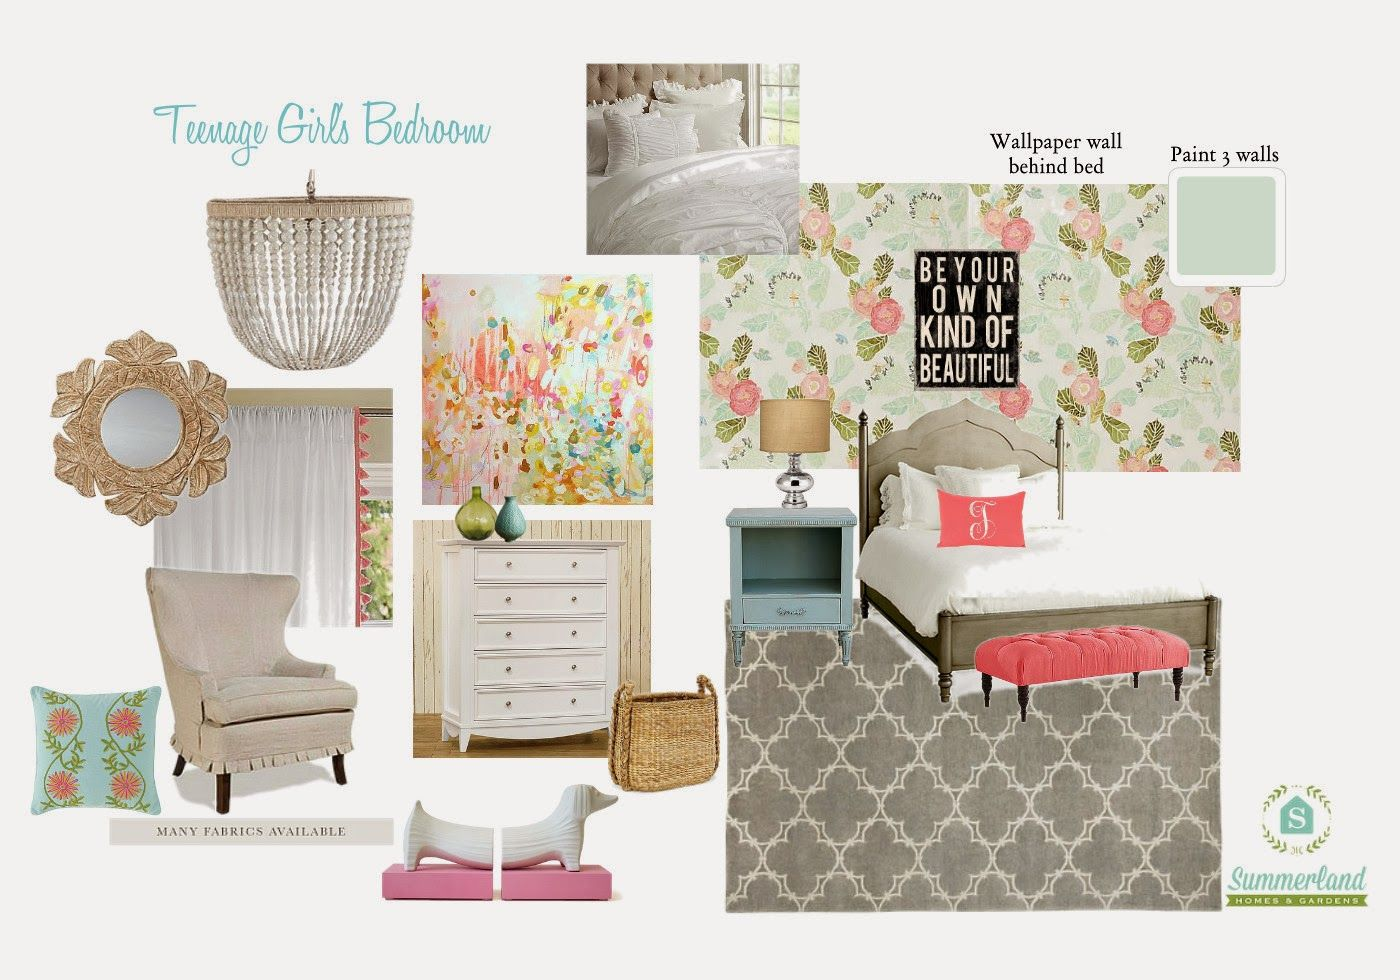 16 Year Old Room Ideas teenage girl's bedroom: white bedding, a monogrammed pillow